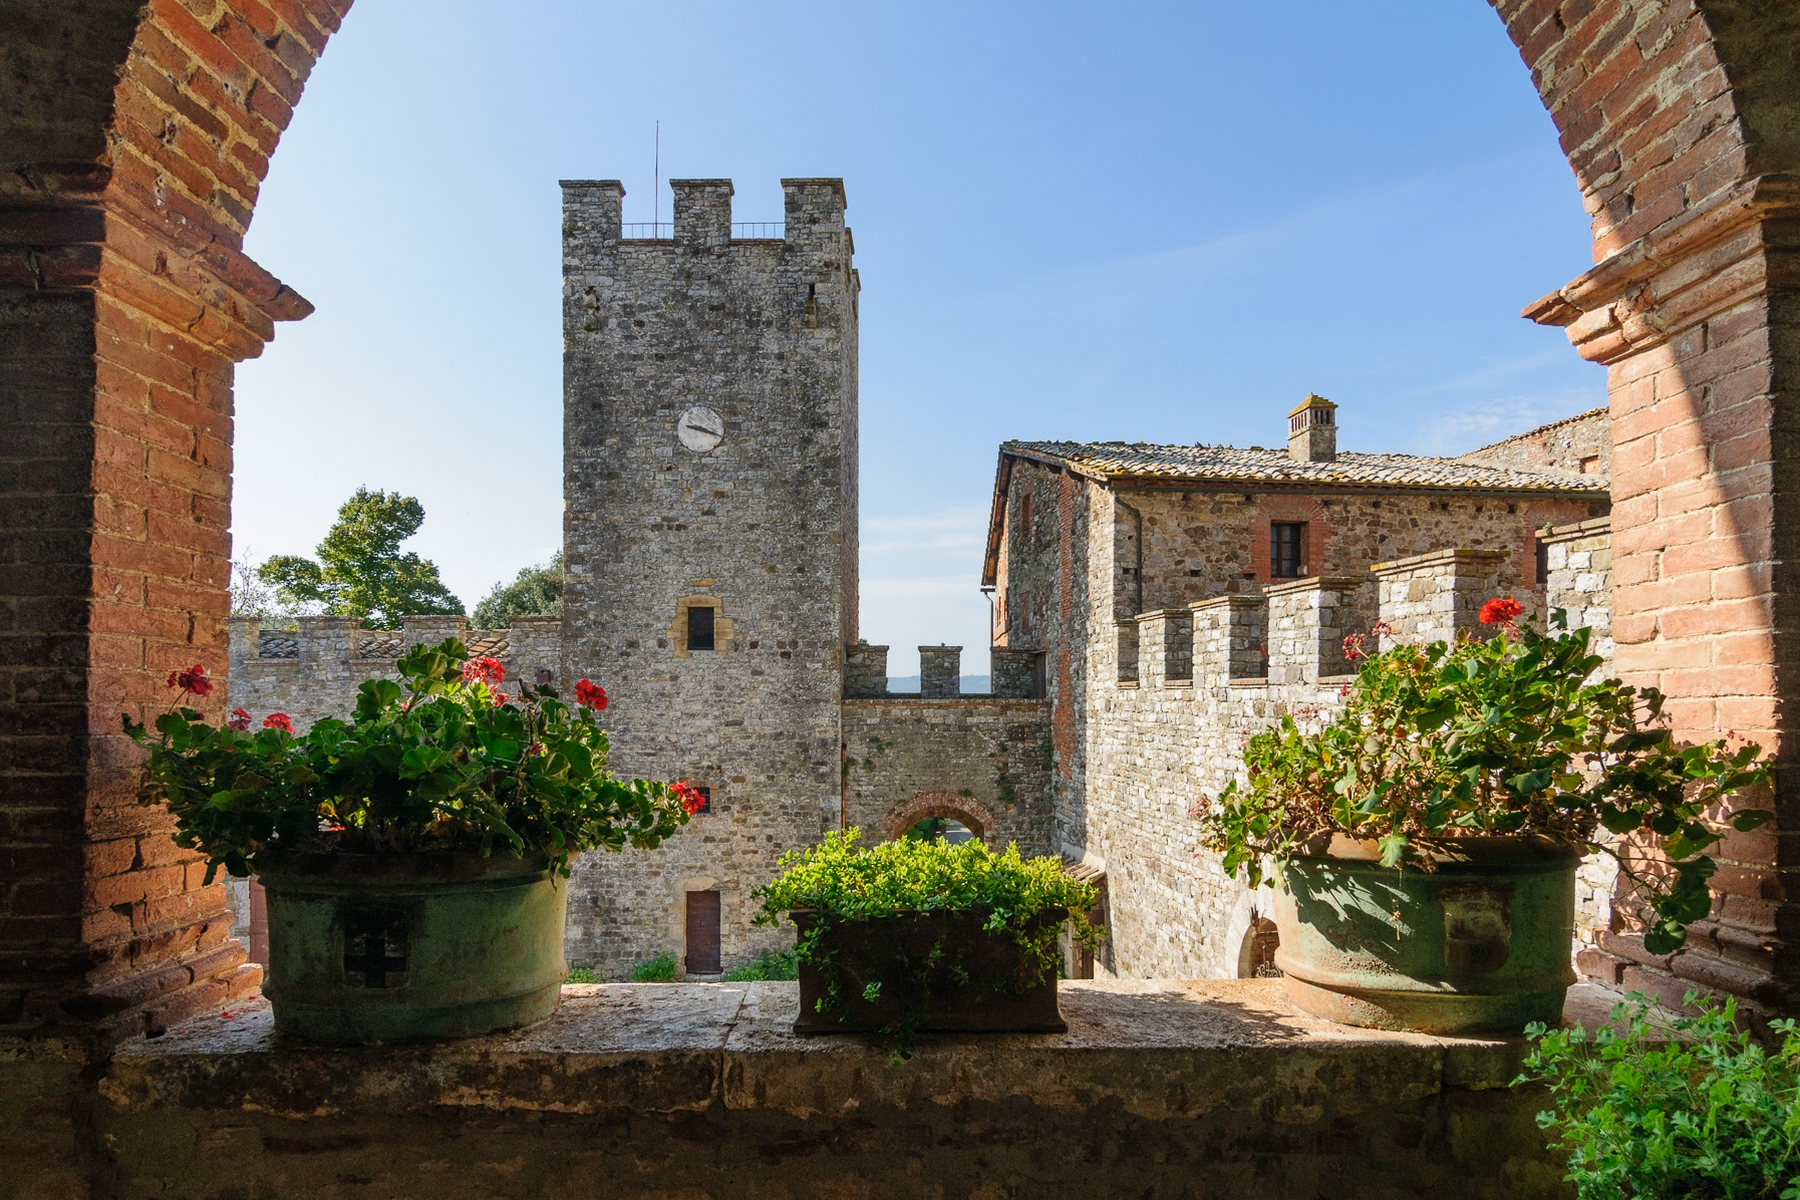 Additional photo for property listing at Glamorous Medieval Castle near Siena  Siena, Siena 53011 Italy